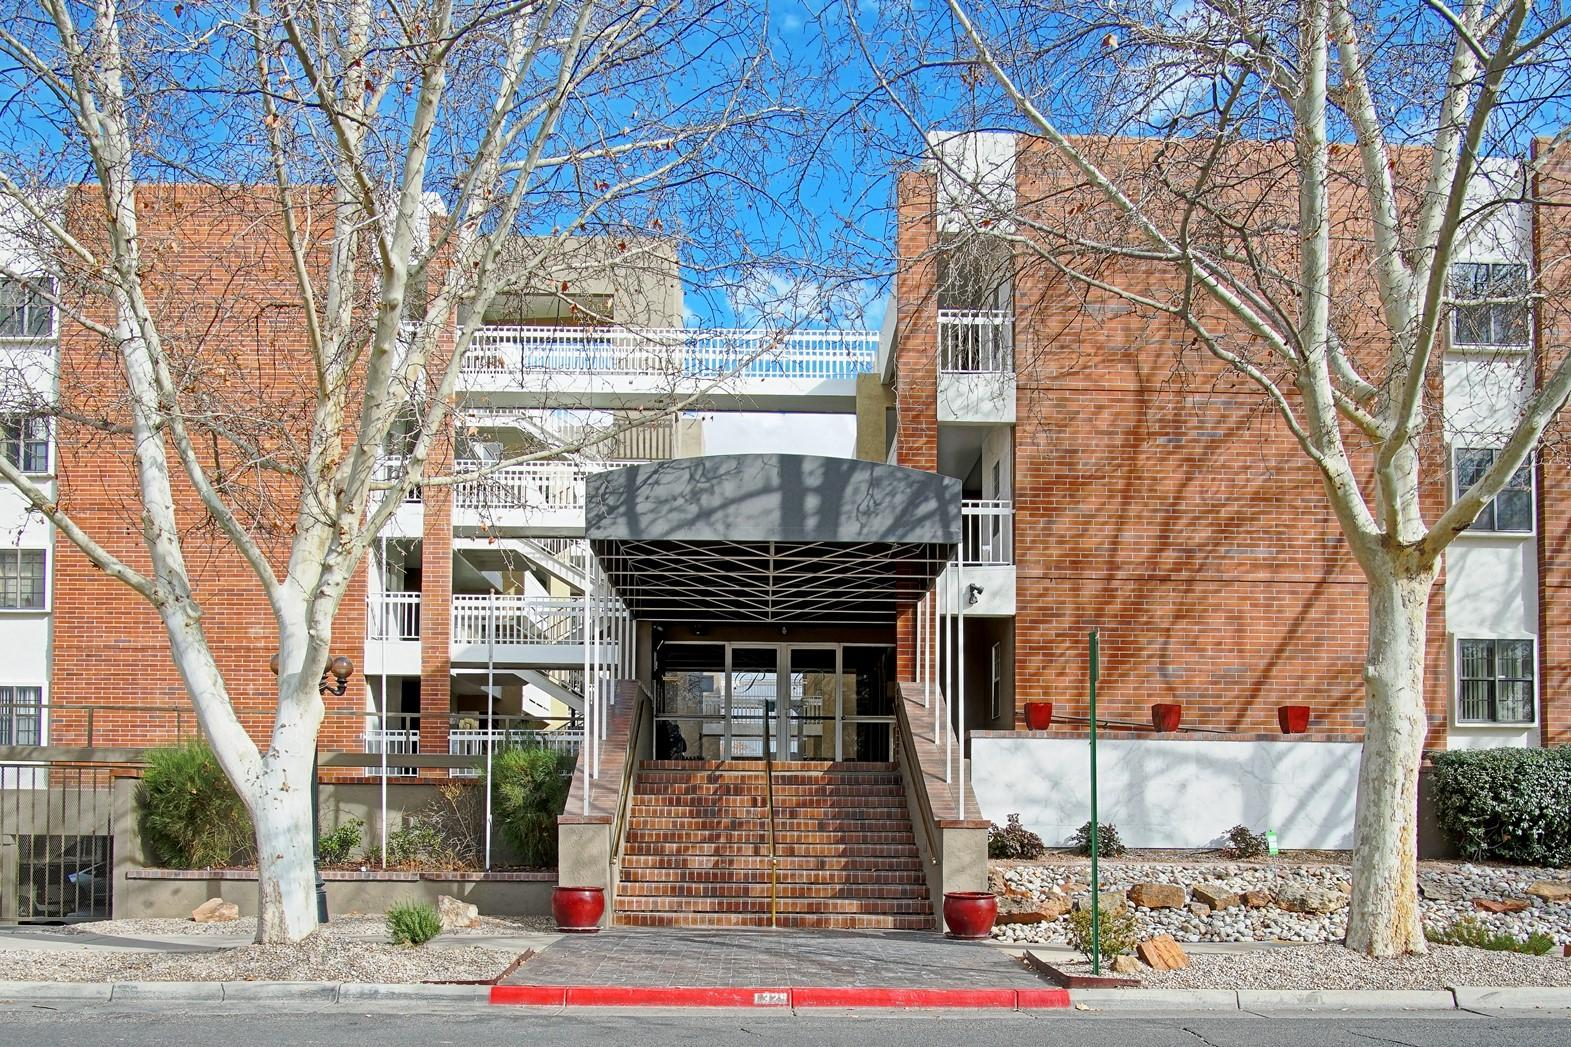 Third floor unit with spectacular views of the mountains, the city lights and the west mesa from the balcony. With a great northern light and nice high ceilings you'll love all finishes to make this condominium reflect your style. Welcome Home to Park Place Condominium, Albuquerque's premier country club condominium living community.